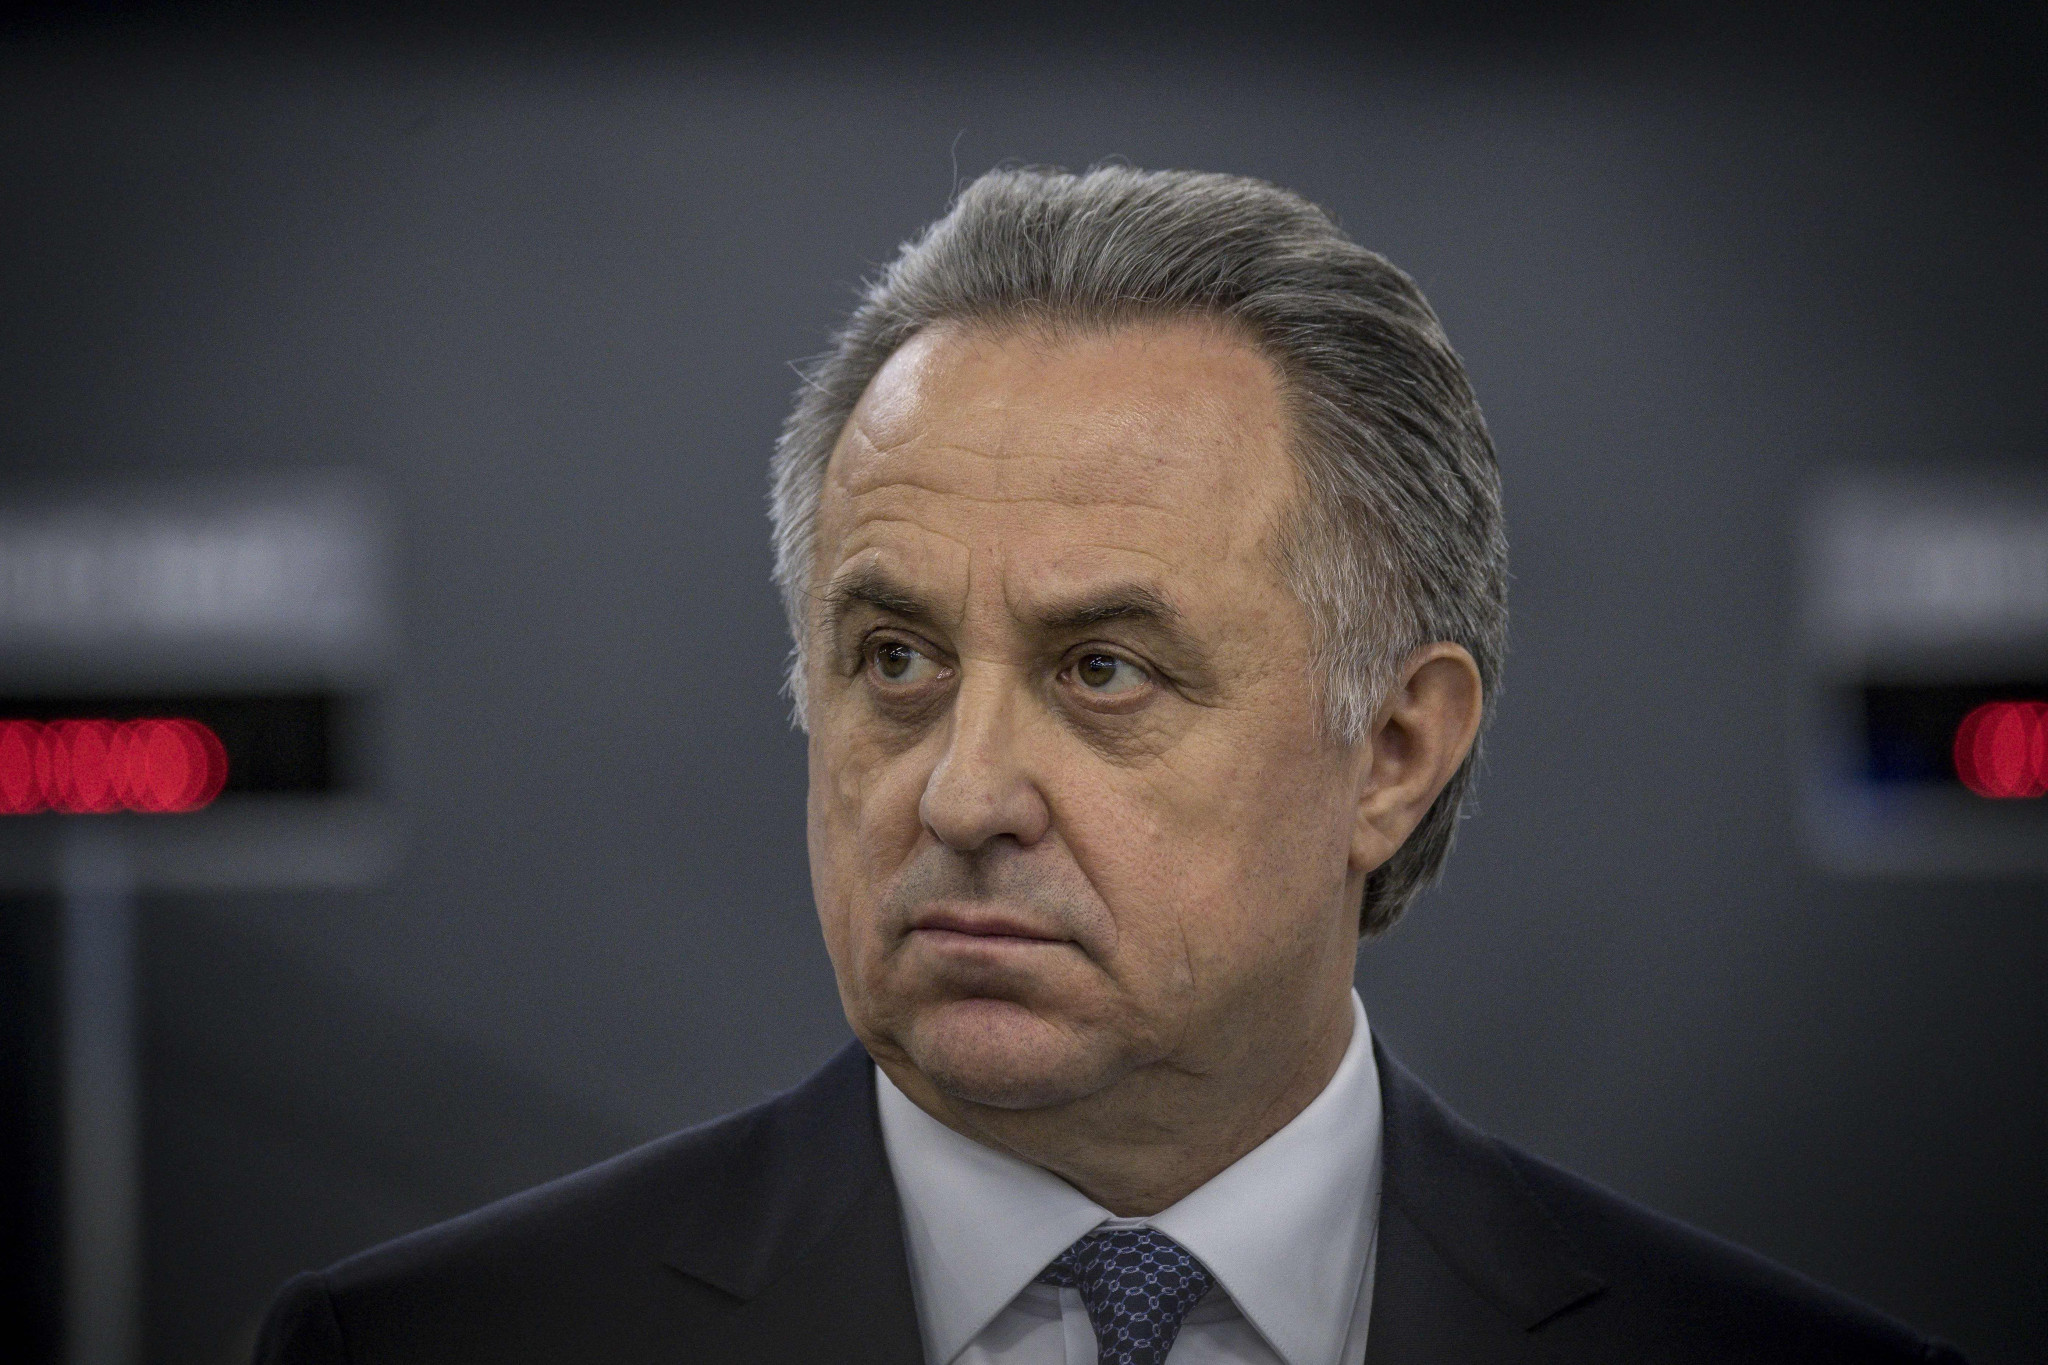 Vitaly Mutko has stepped down from his Presidential roles on the 2018 World Cup Organising Committee and the Russian Football Union ©Getty Images